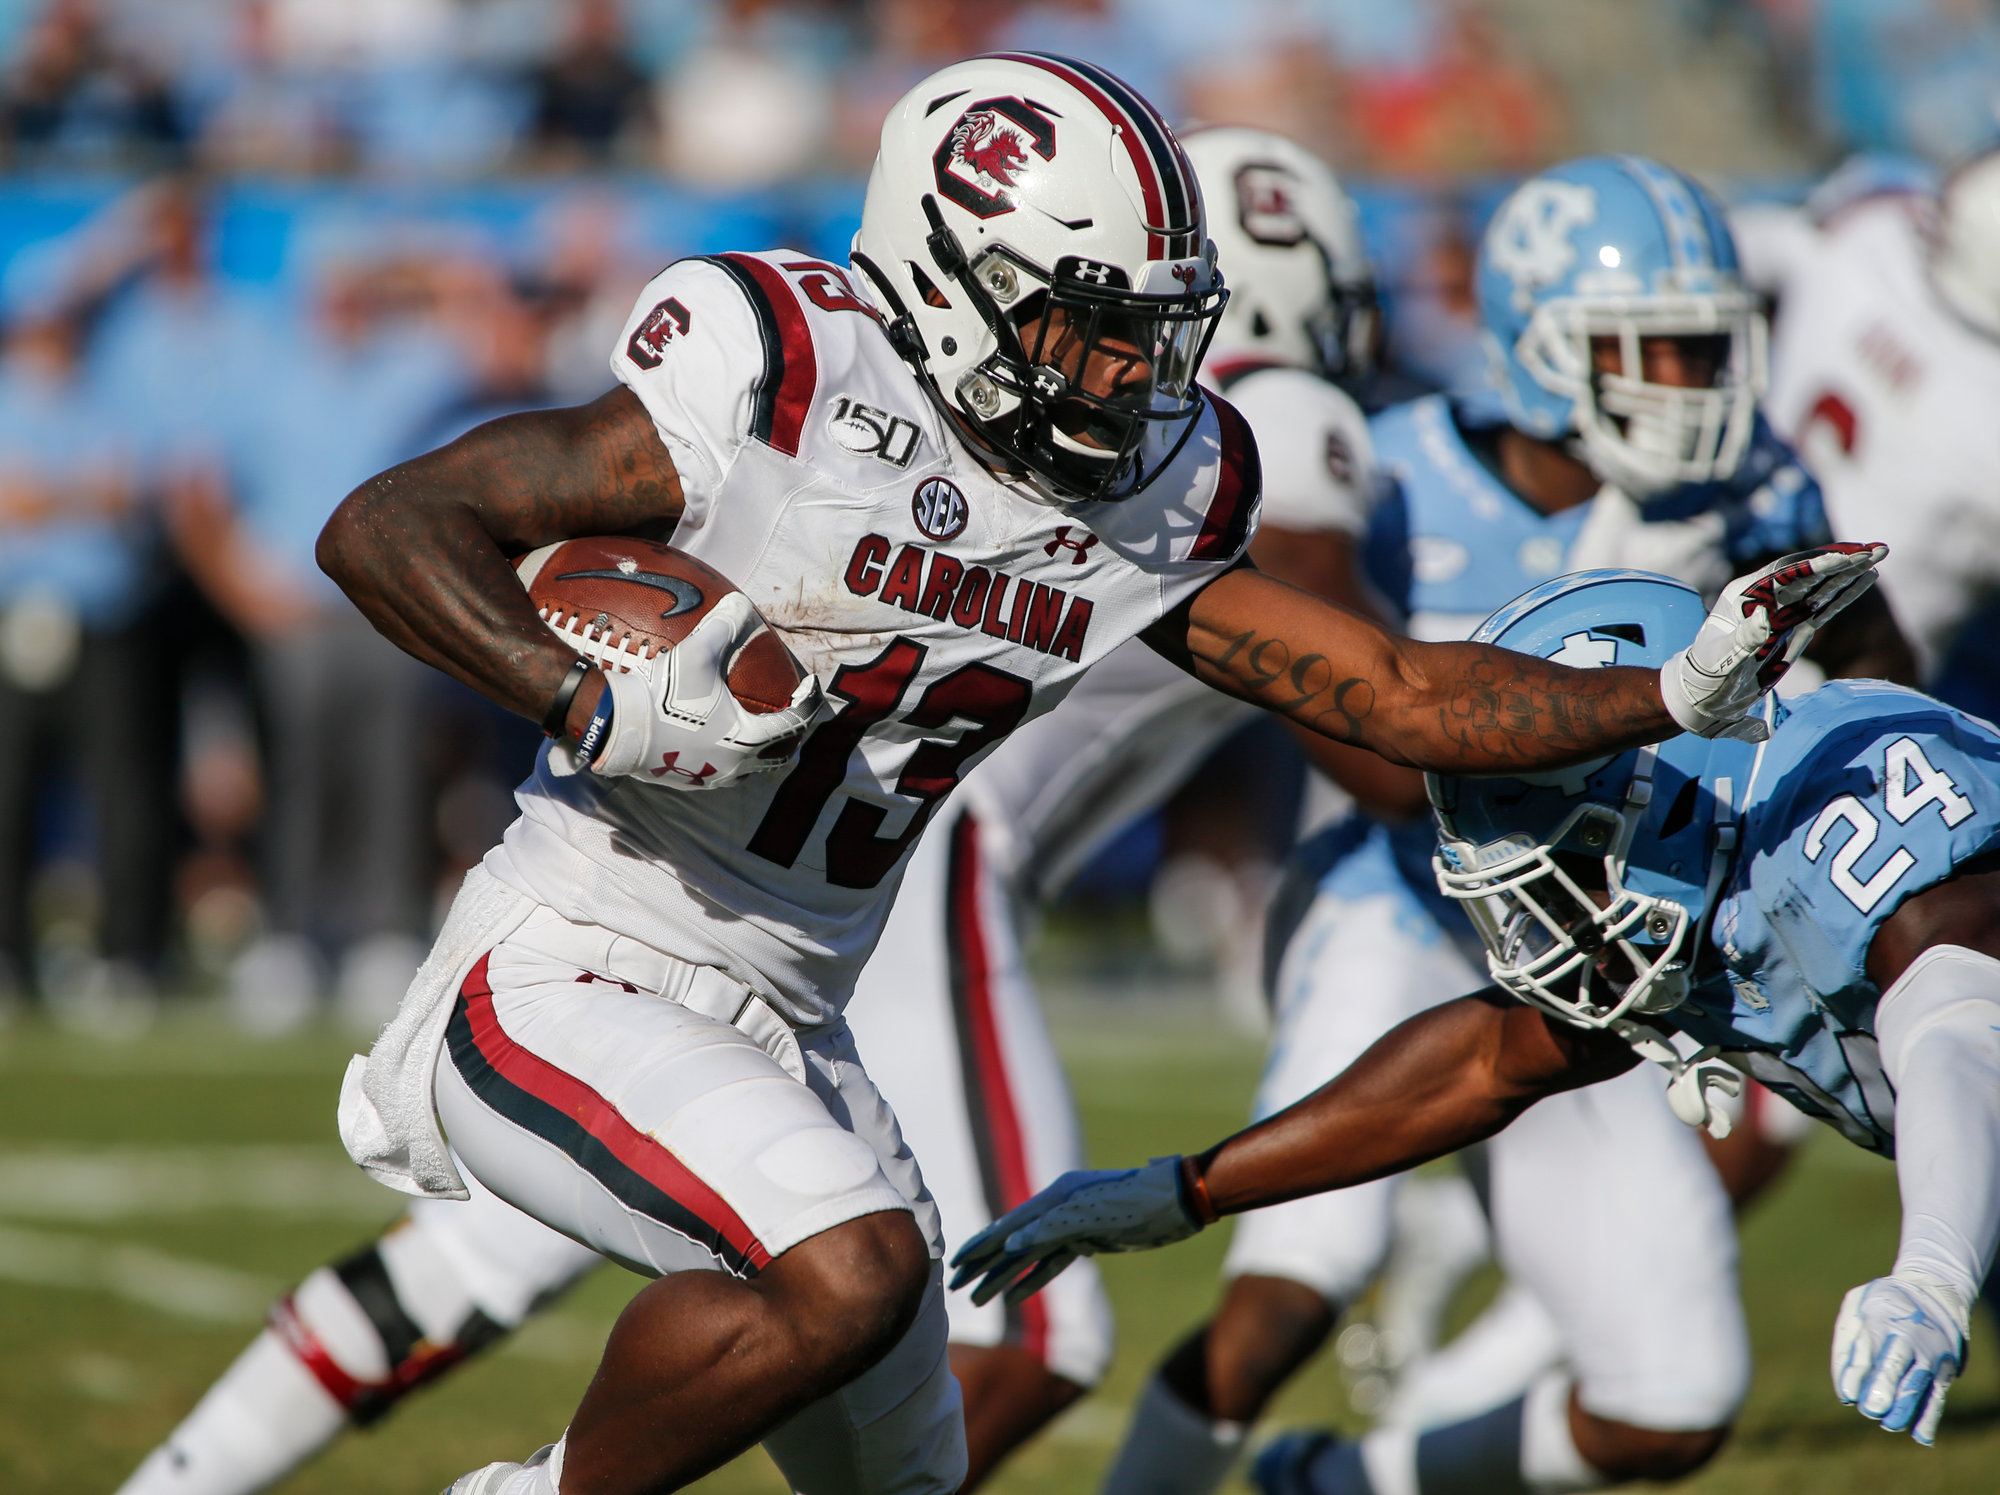 South Carolina wide receiver Shi Smith, left, looks for running room against North Carolina linebacker Eugene Asante in the second half of an NCAA college football game in Charlotte, N.C., Saturday, Aug. 31, 2019. North Carolina won 24-20. (AP Photo/Nell Redmond)